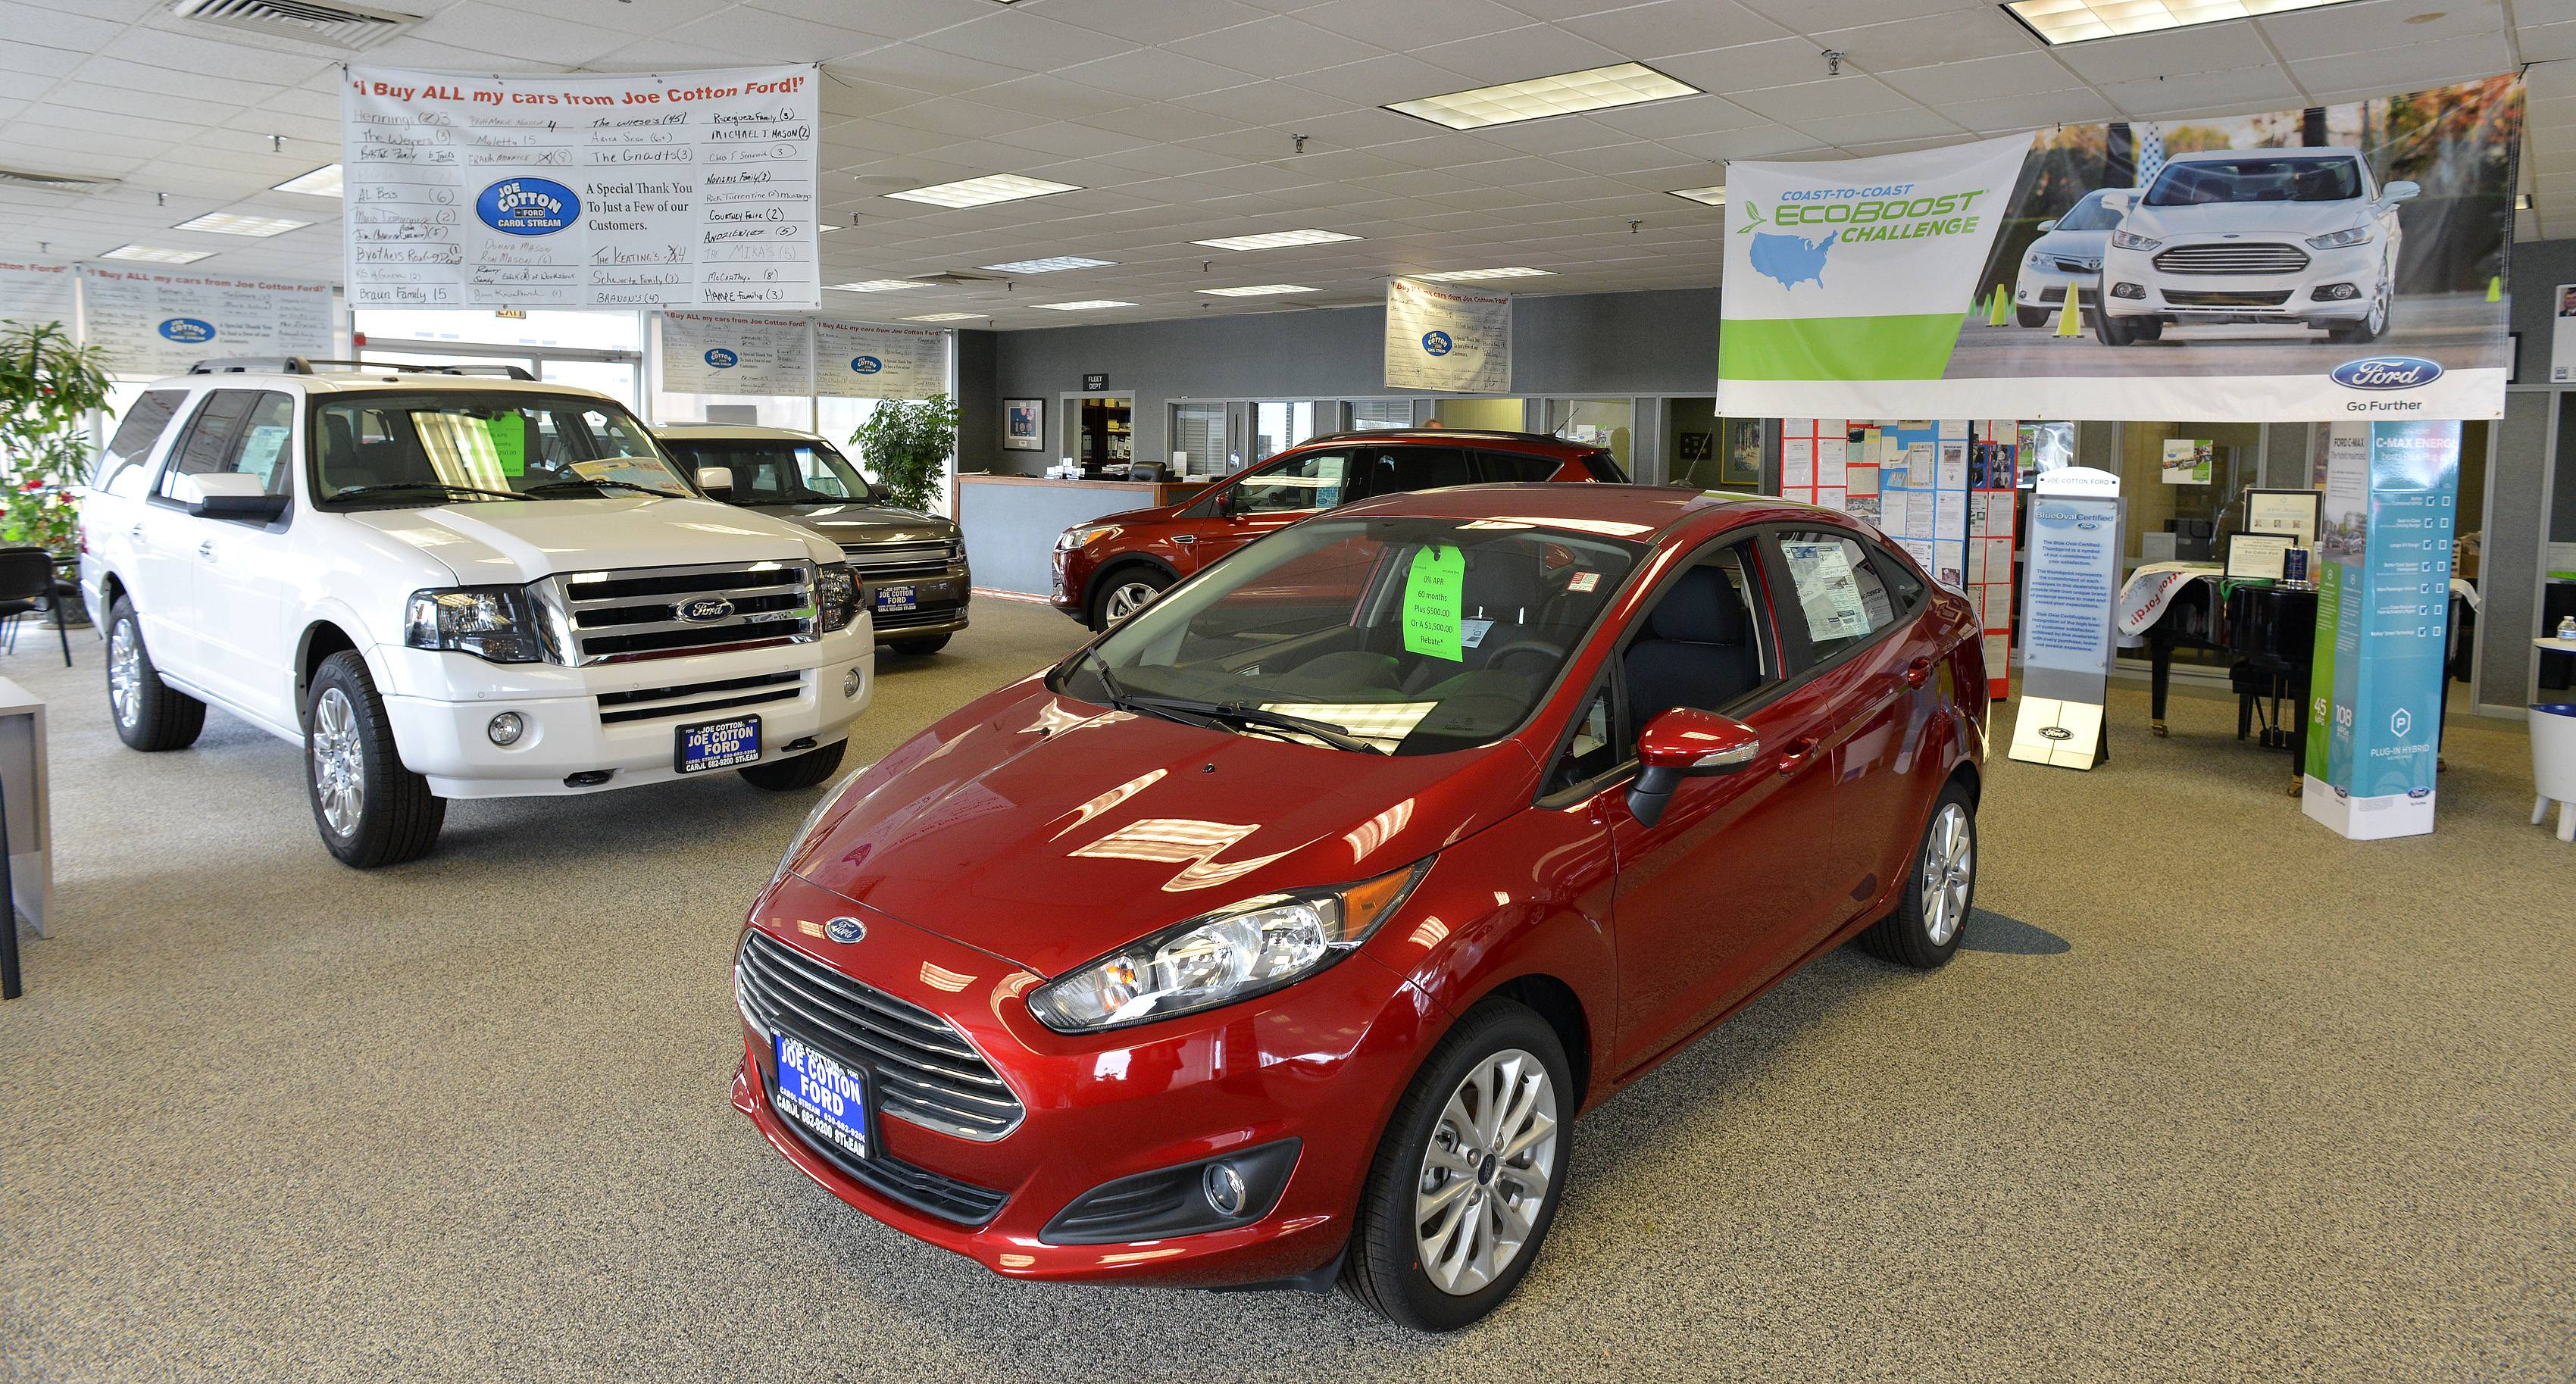 The showroom floor at Joe Cotton Ford in Carol Stream